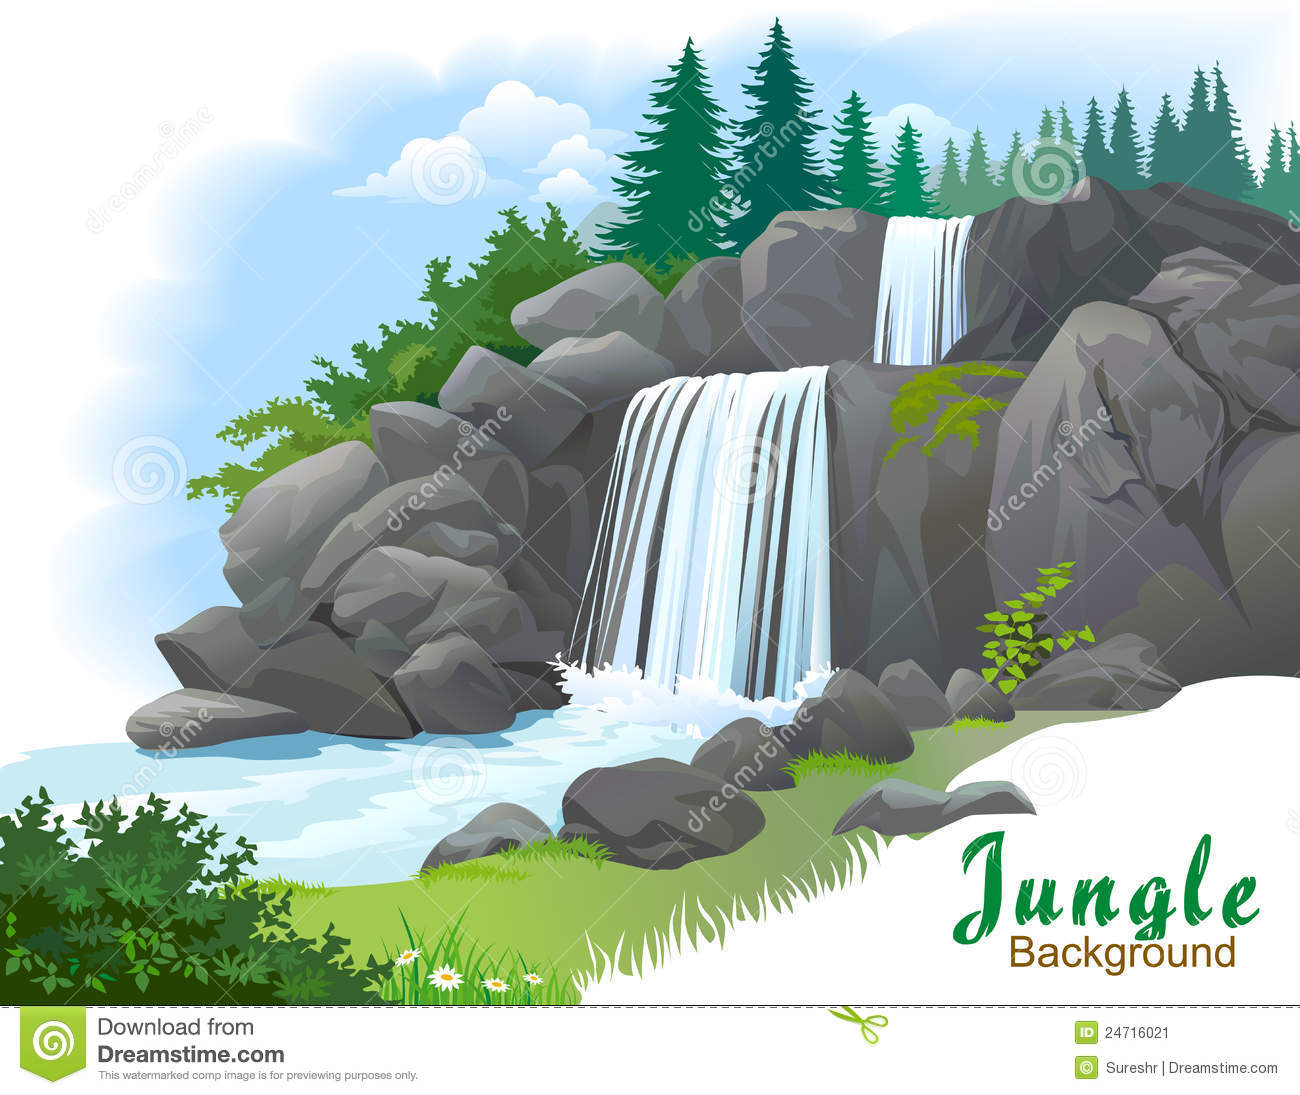 Water falls live clipart.